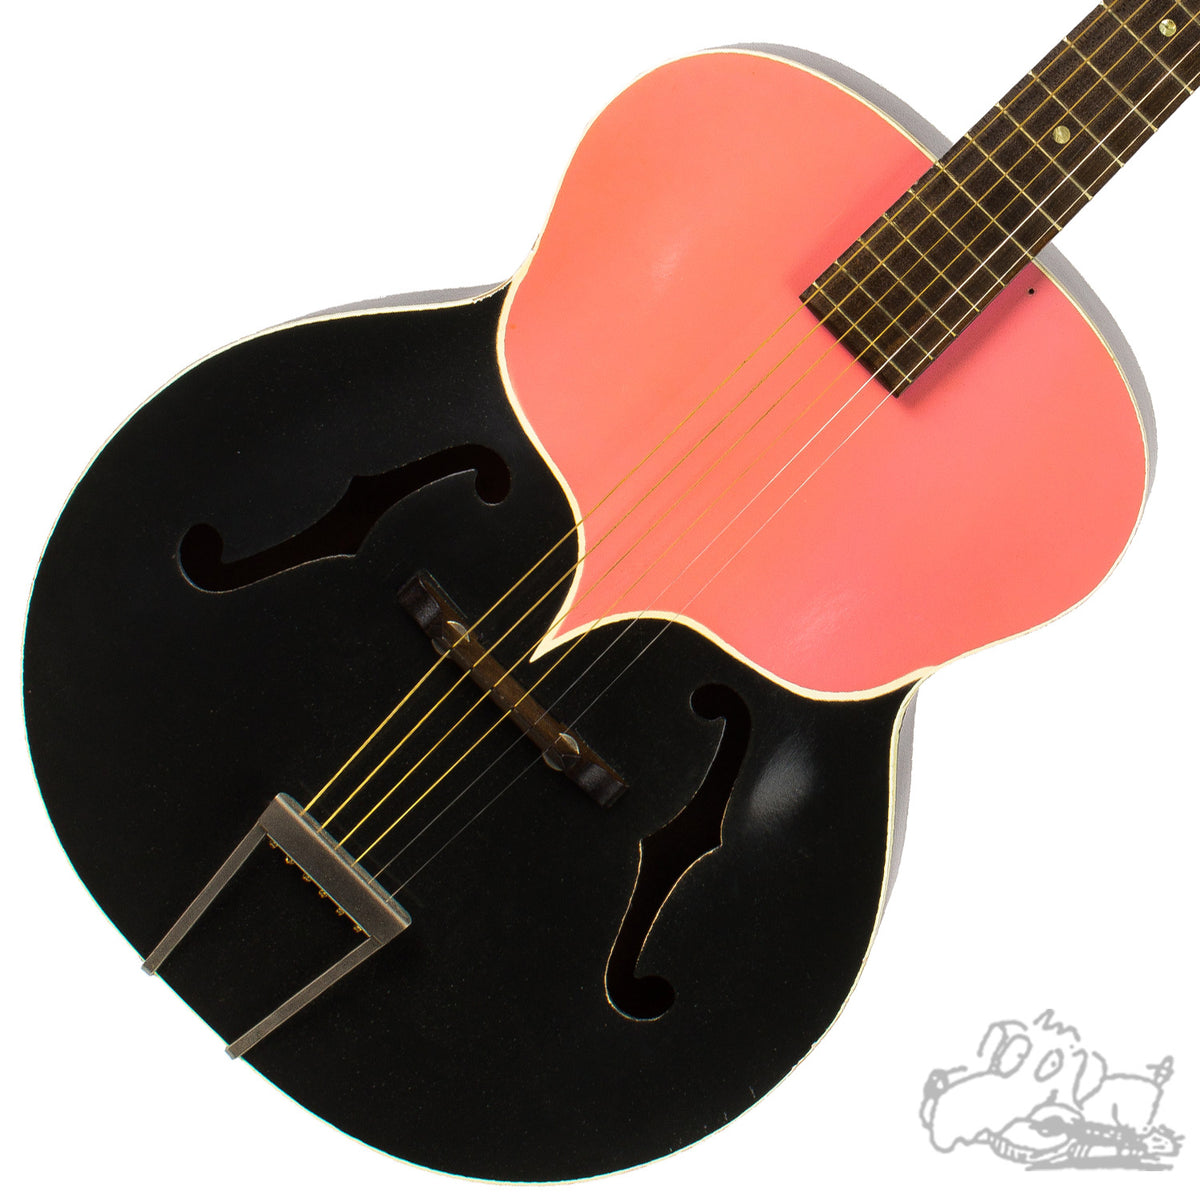 1950's Harmony Catalina H1220 - Charcoal Grey and Pink - Archtop Acoustic Guitar